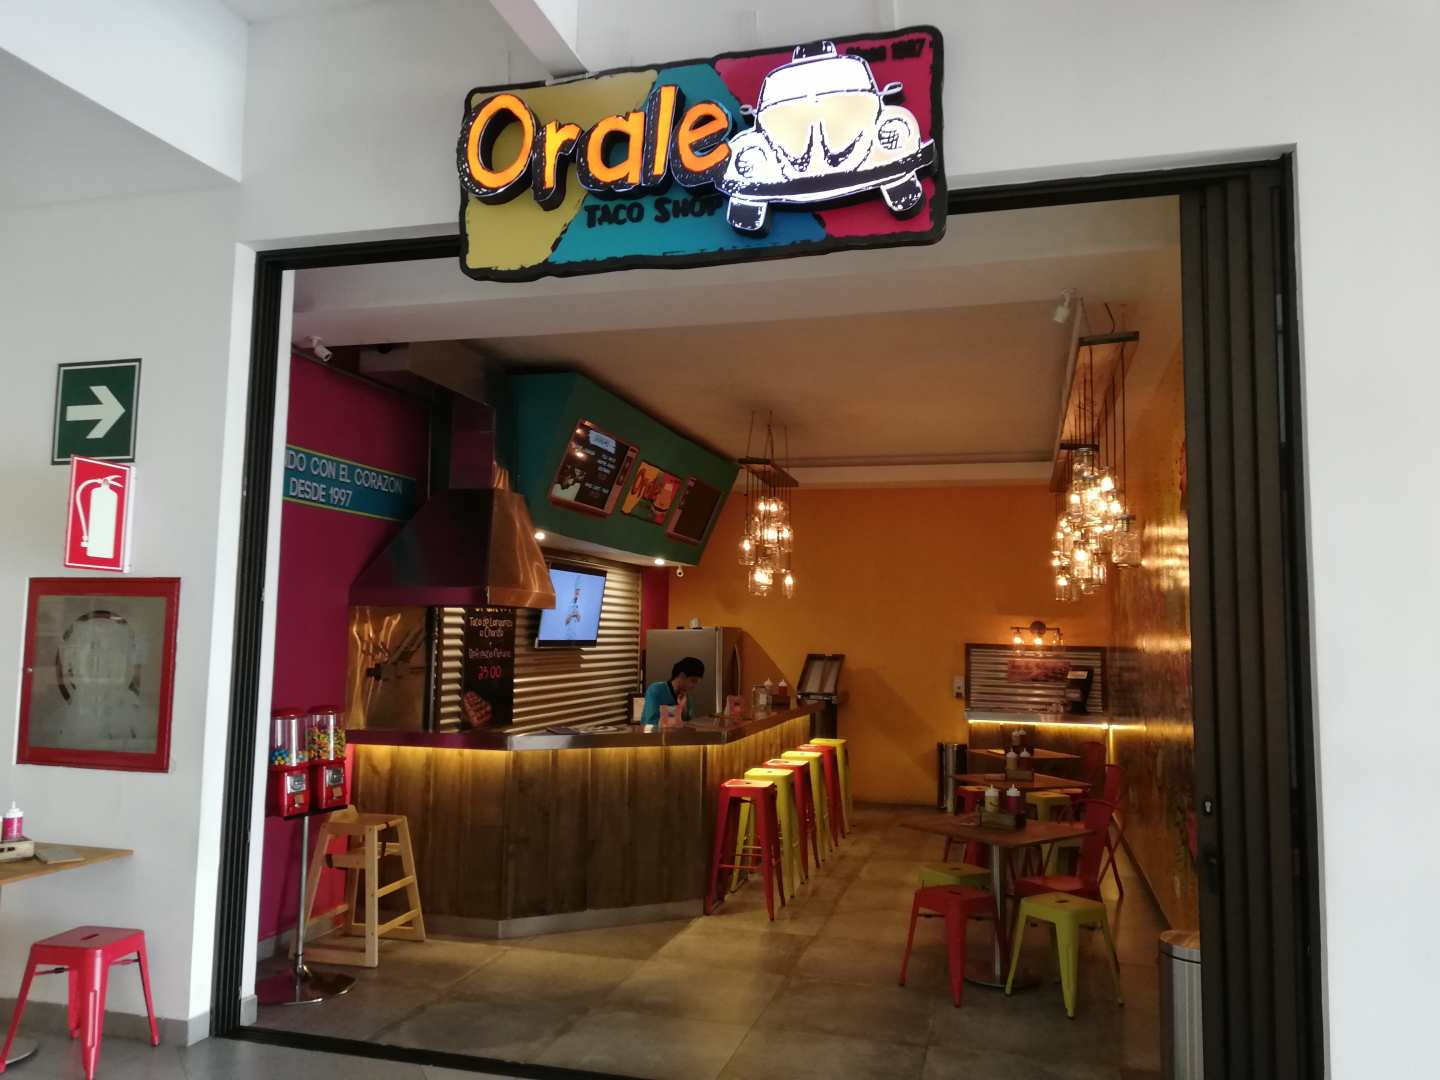 Orale Taco Shop (Deco City)